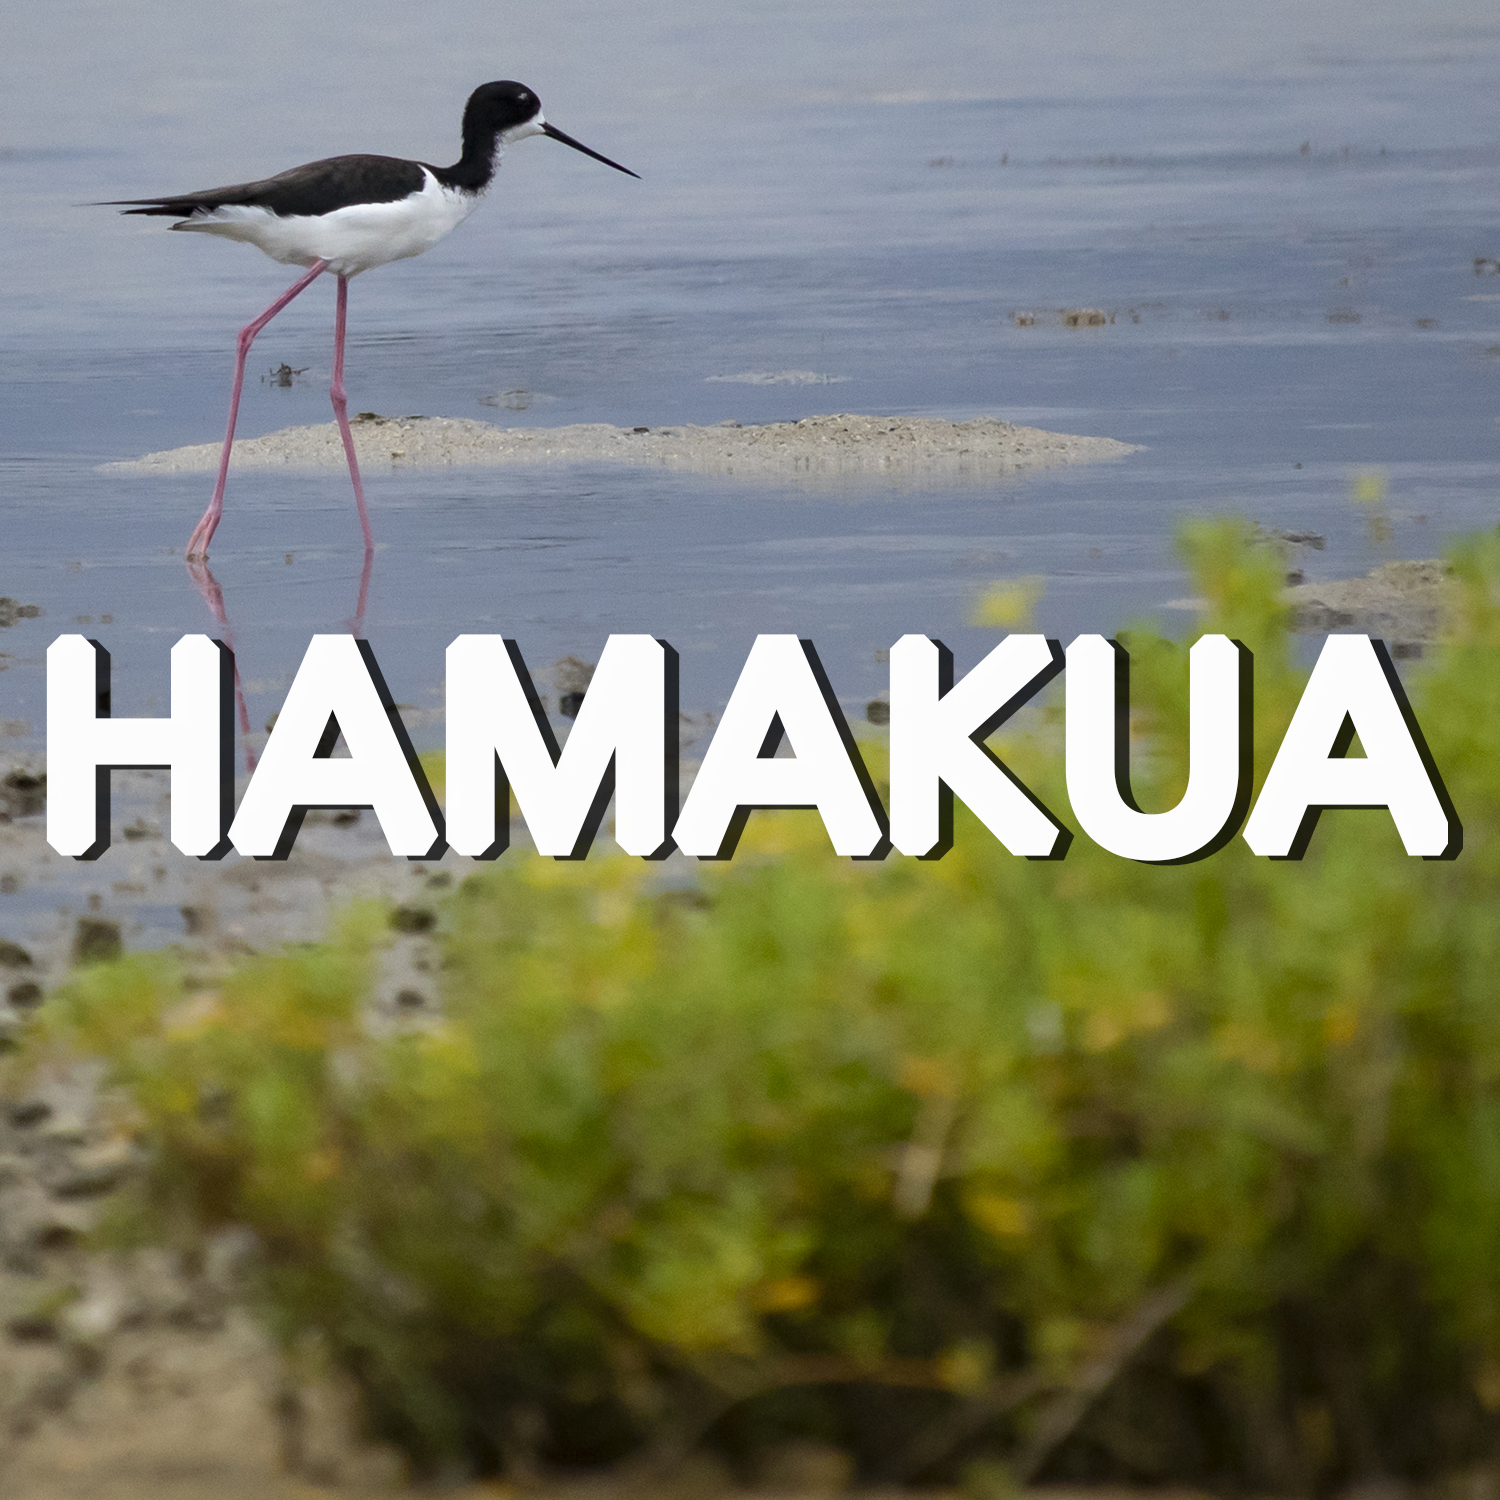 Button to learn more about Hamakua